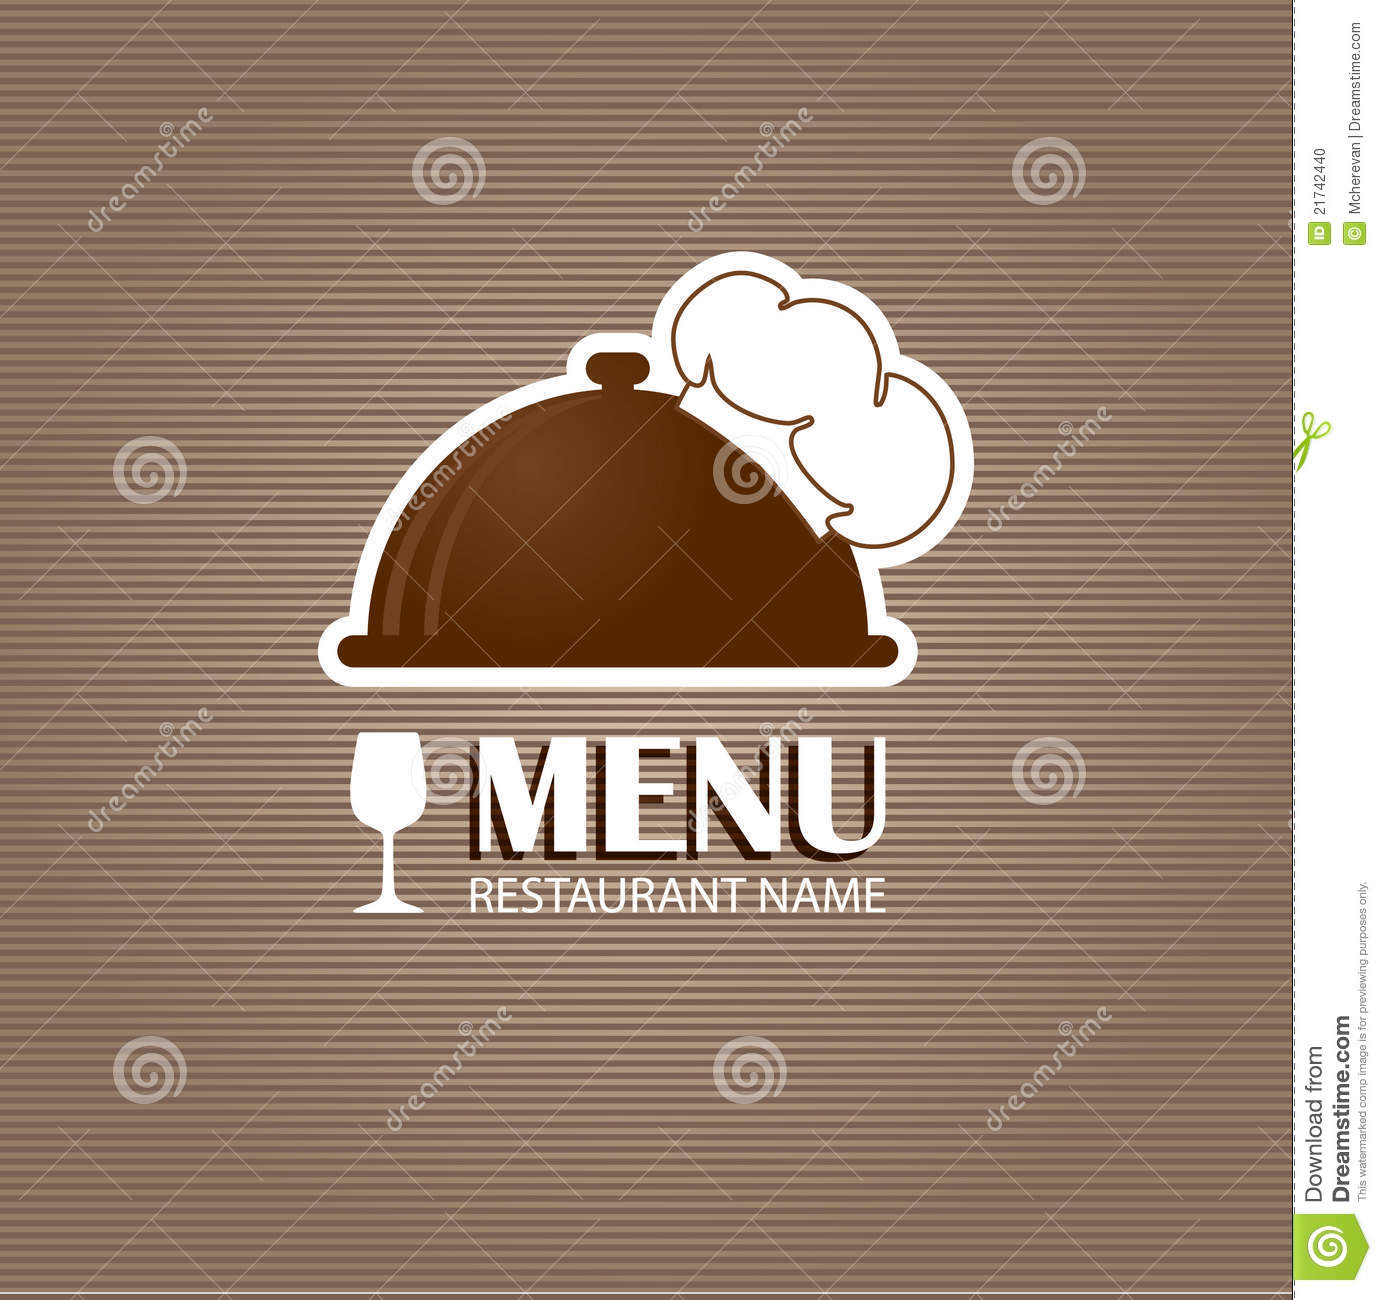 Restaurant And Bar Menu List. Stock Photo - Image: 21742440